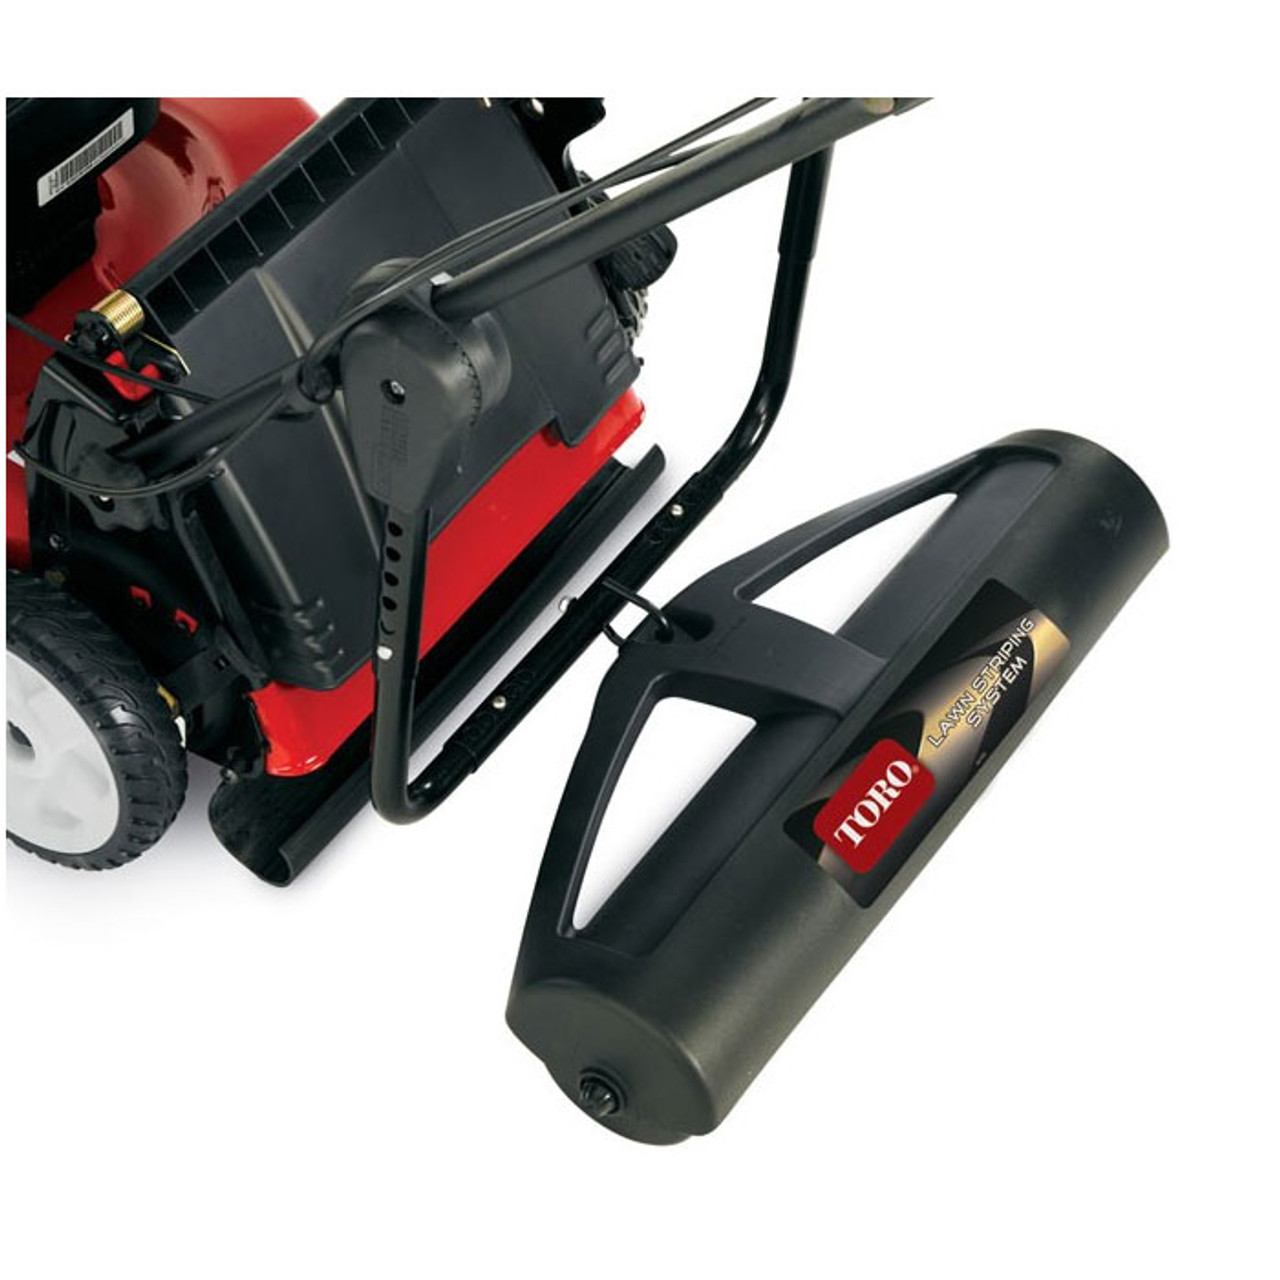 Toro Lawn Striping System easily attaches to most walk behind mowers